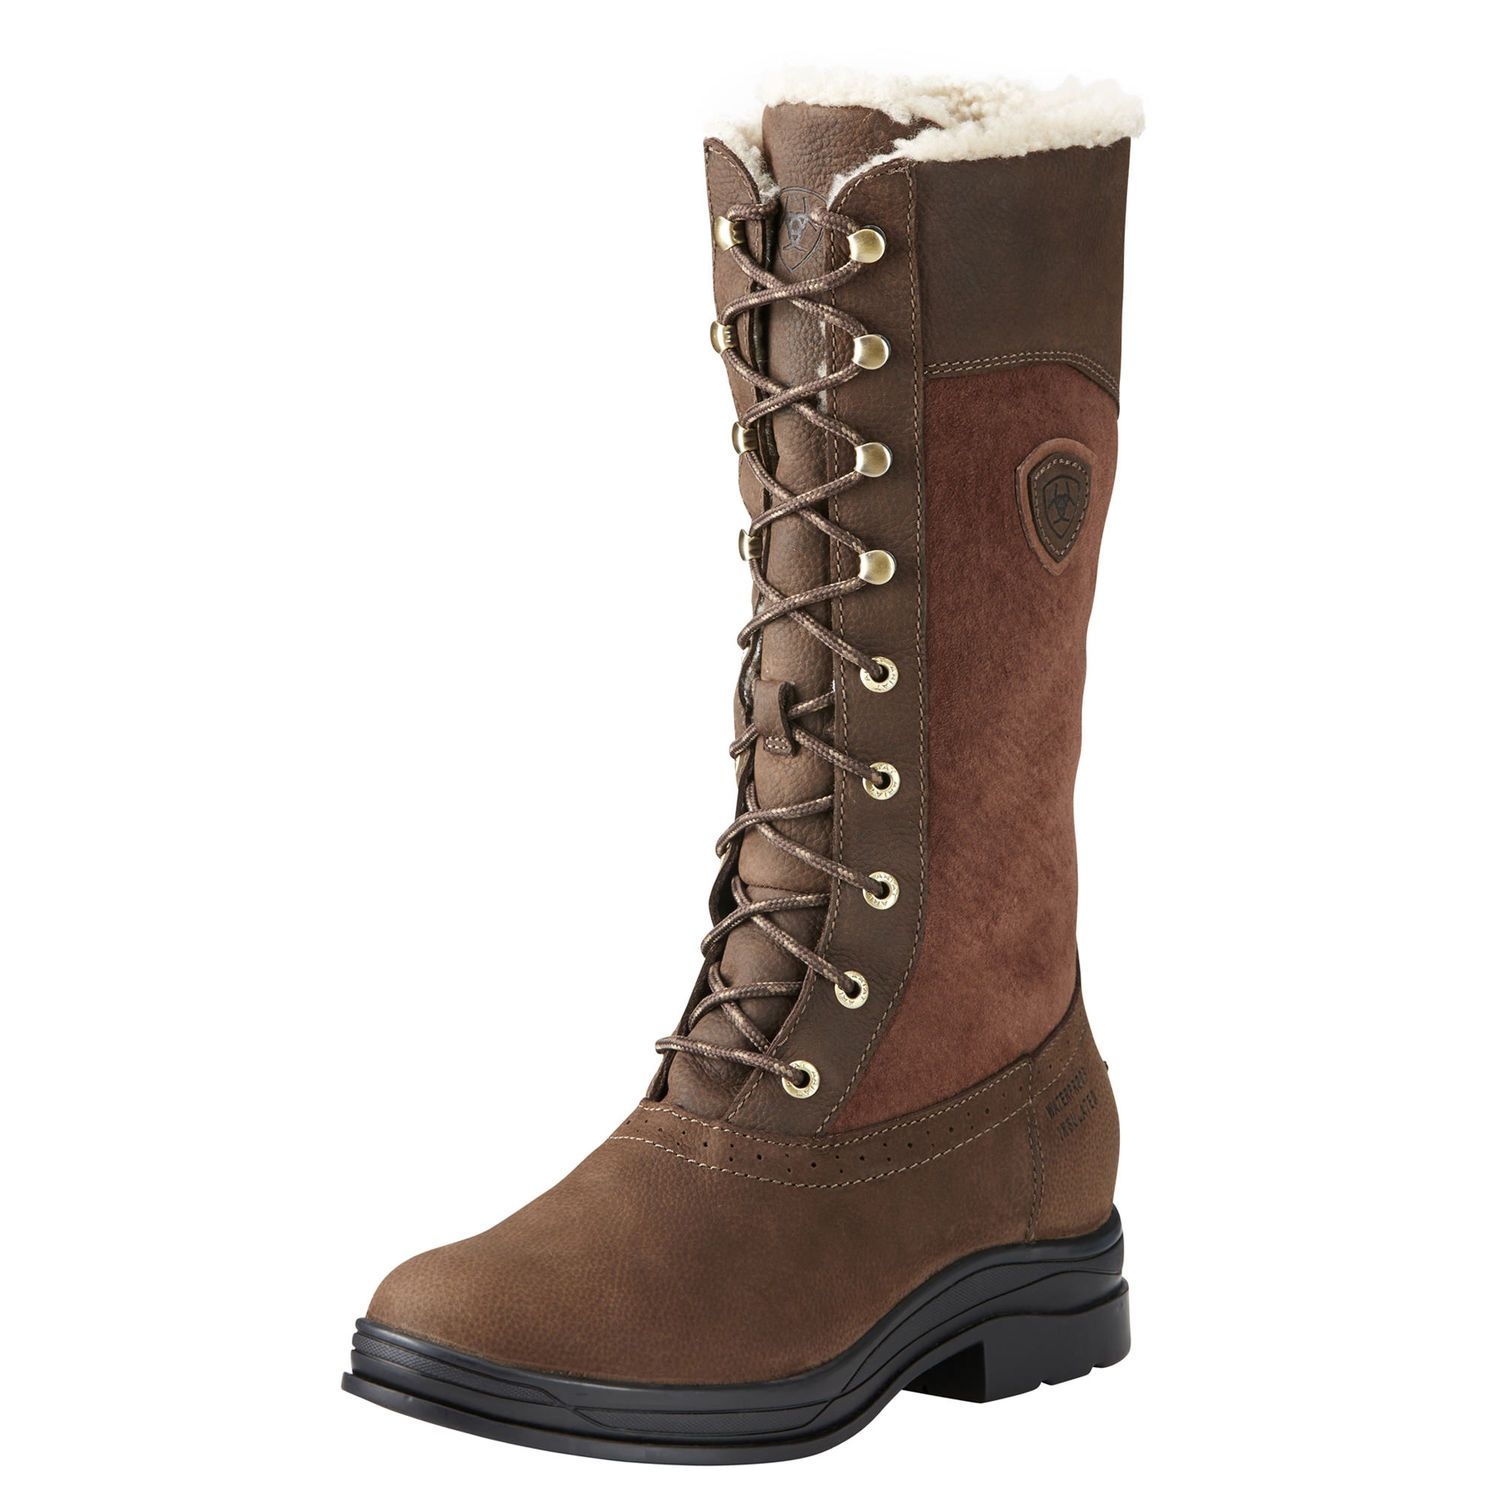 Wythburn Waterproof Insulated Boot Insulated Boots Ariat Boots Womens Boots